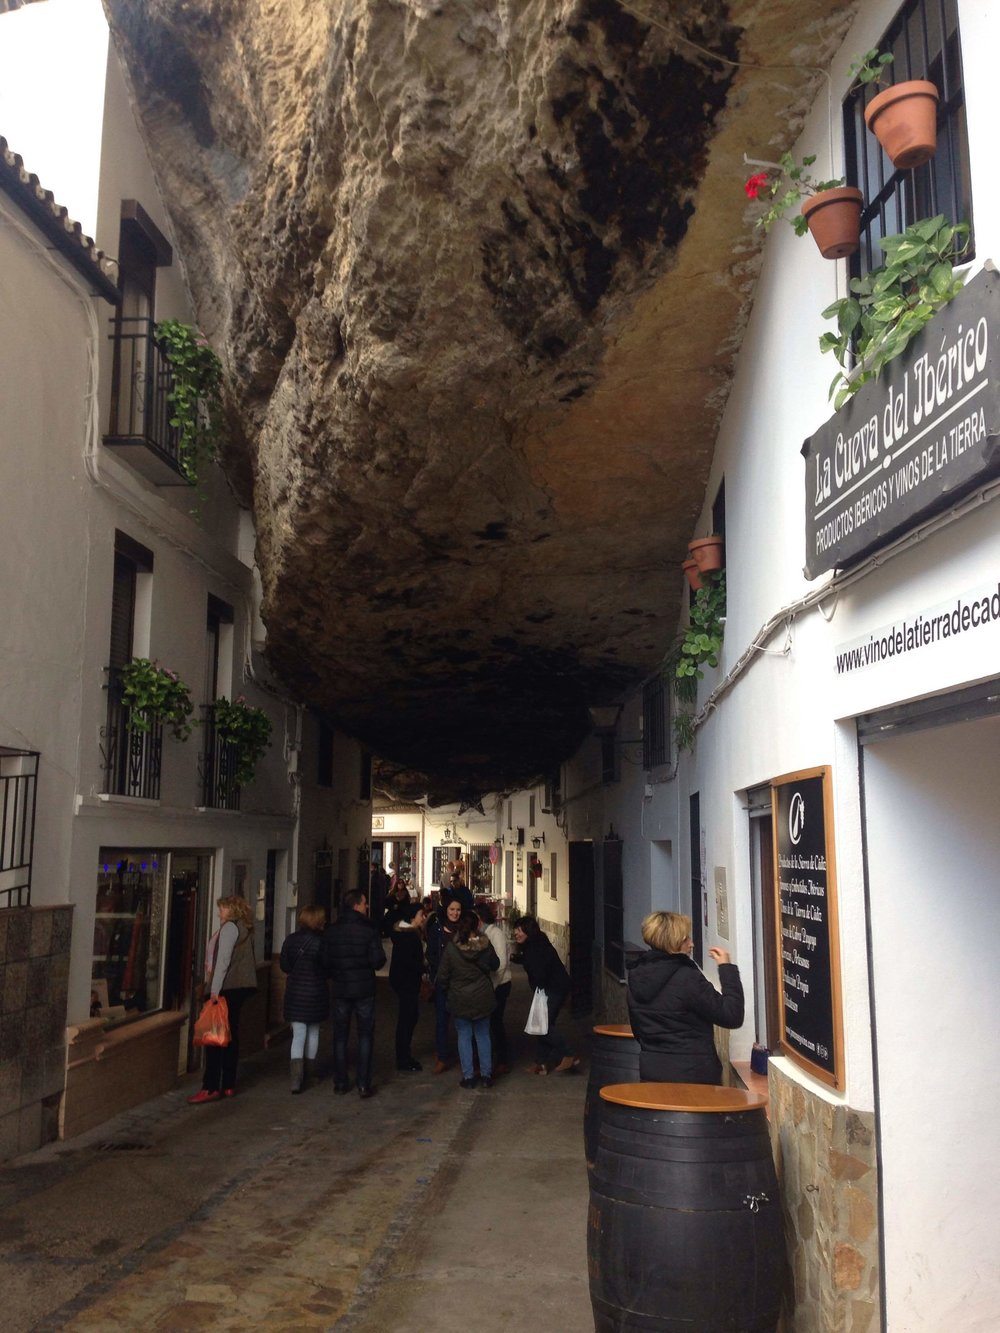 The Sombra, or shadowed side of Setenil, with a street that runs under the rock